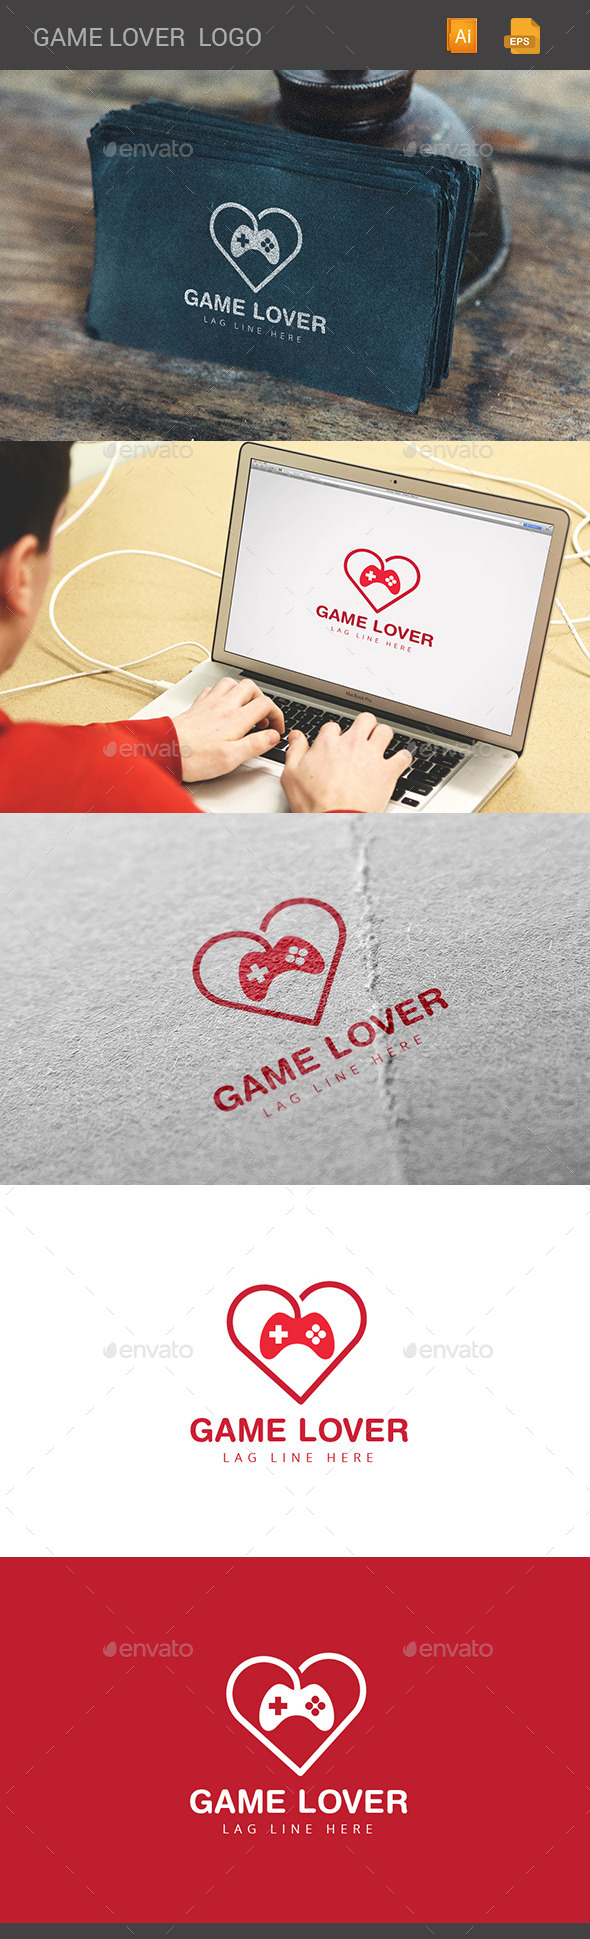 Game Lover Logo